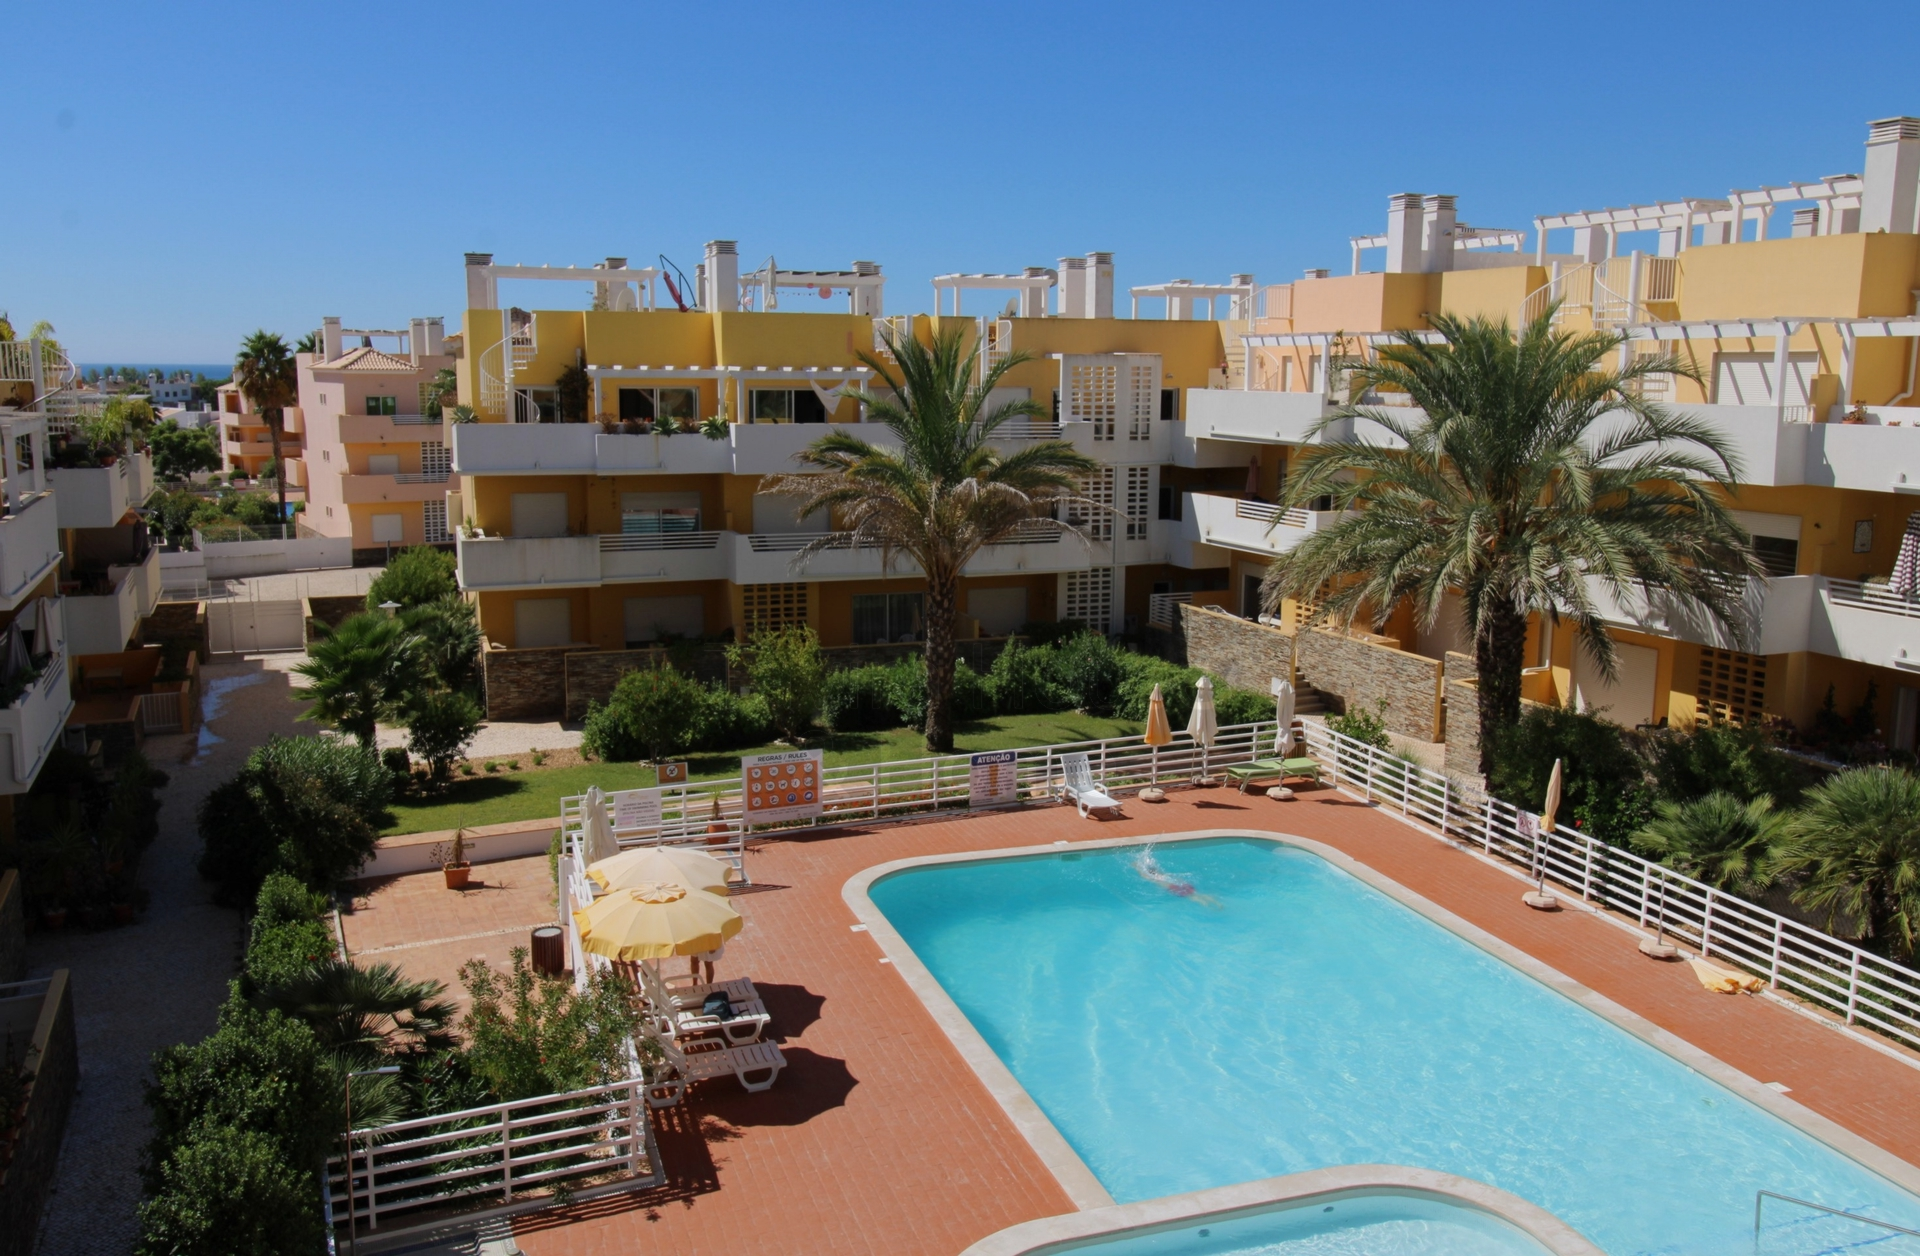 A0613 - Penthouse 2 Bedroom Apartment With Roof Terrace  Cabanas  Tavira  Portugal